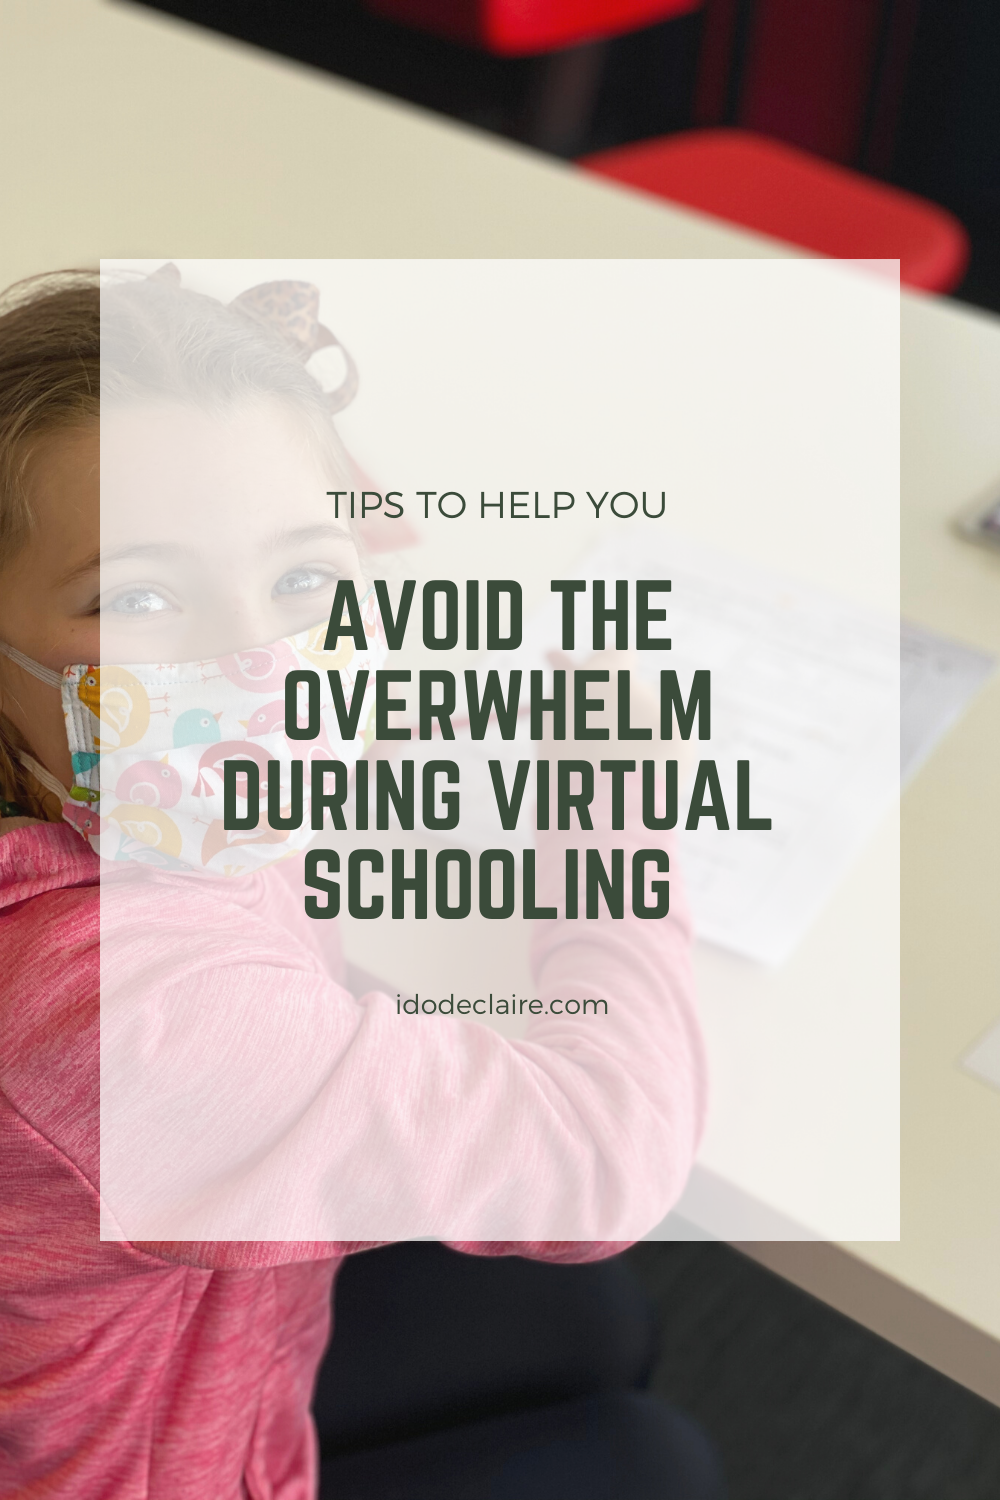 Tips on Avoiding the Overwhelm During Virtual Schooling